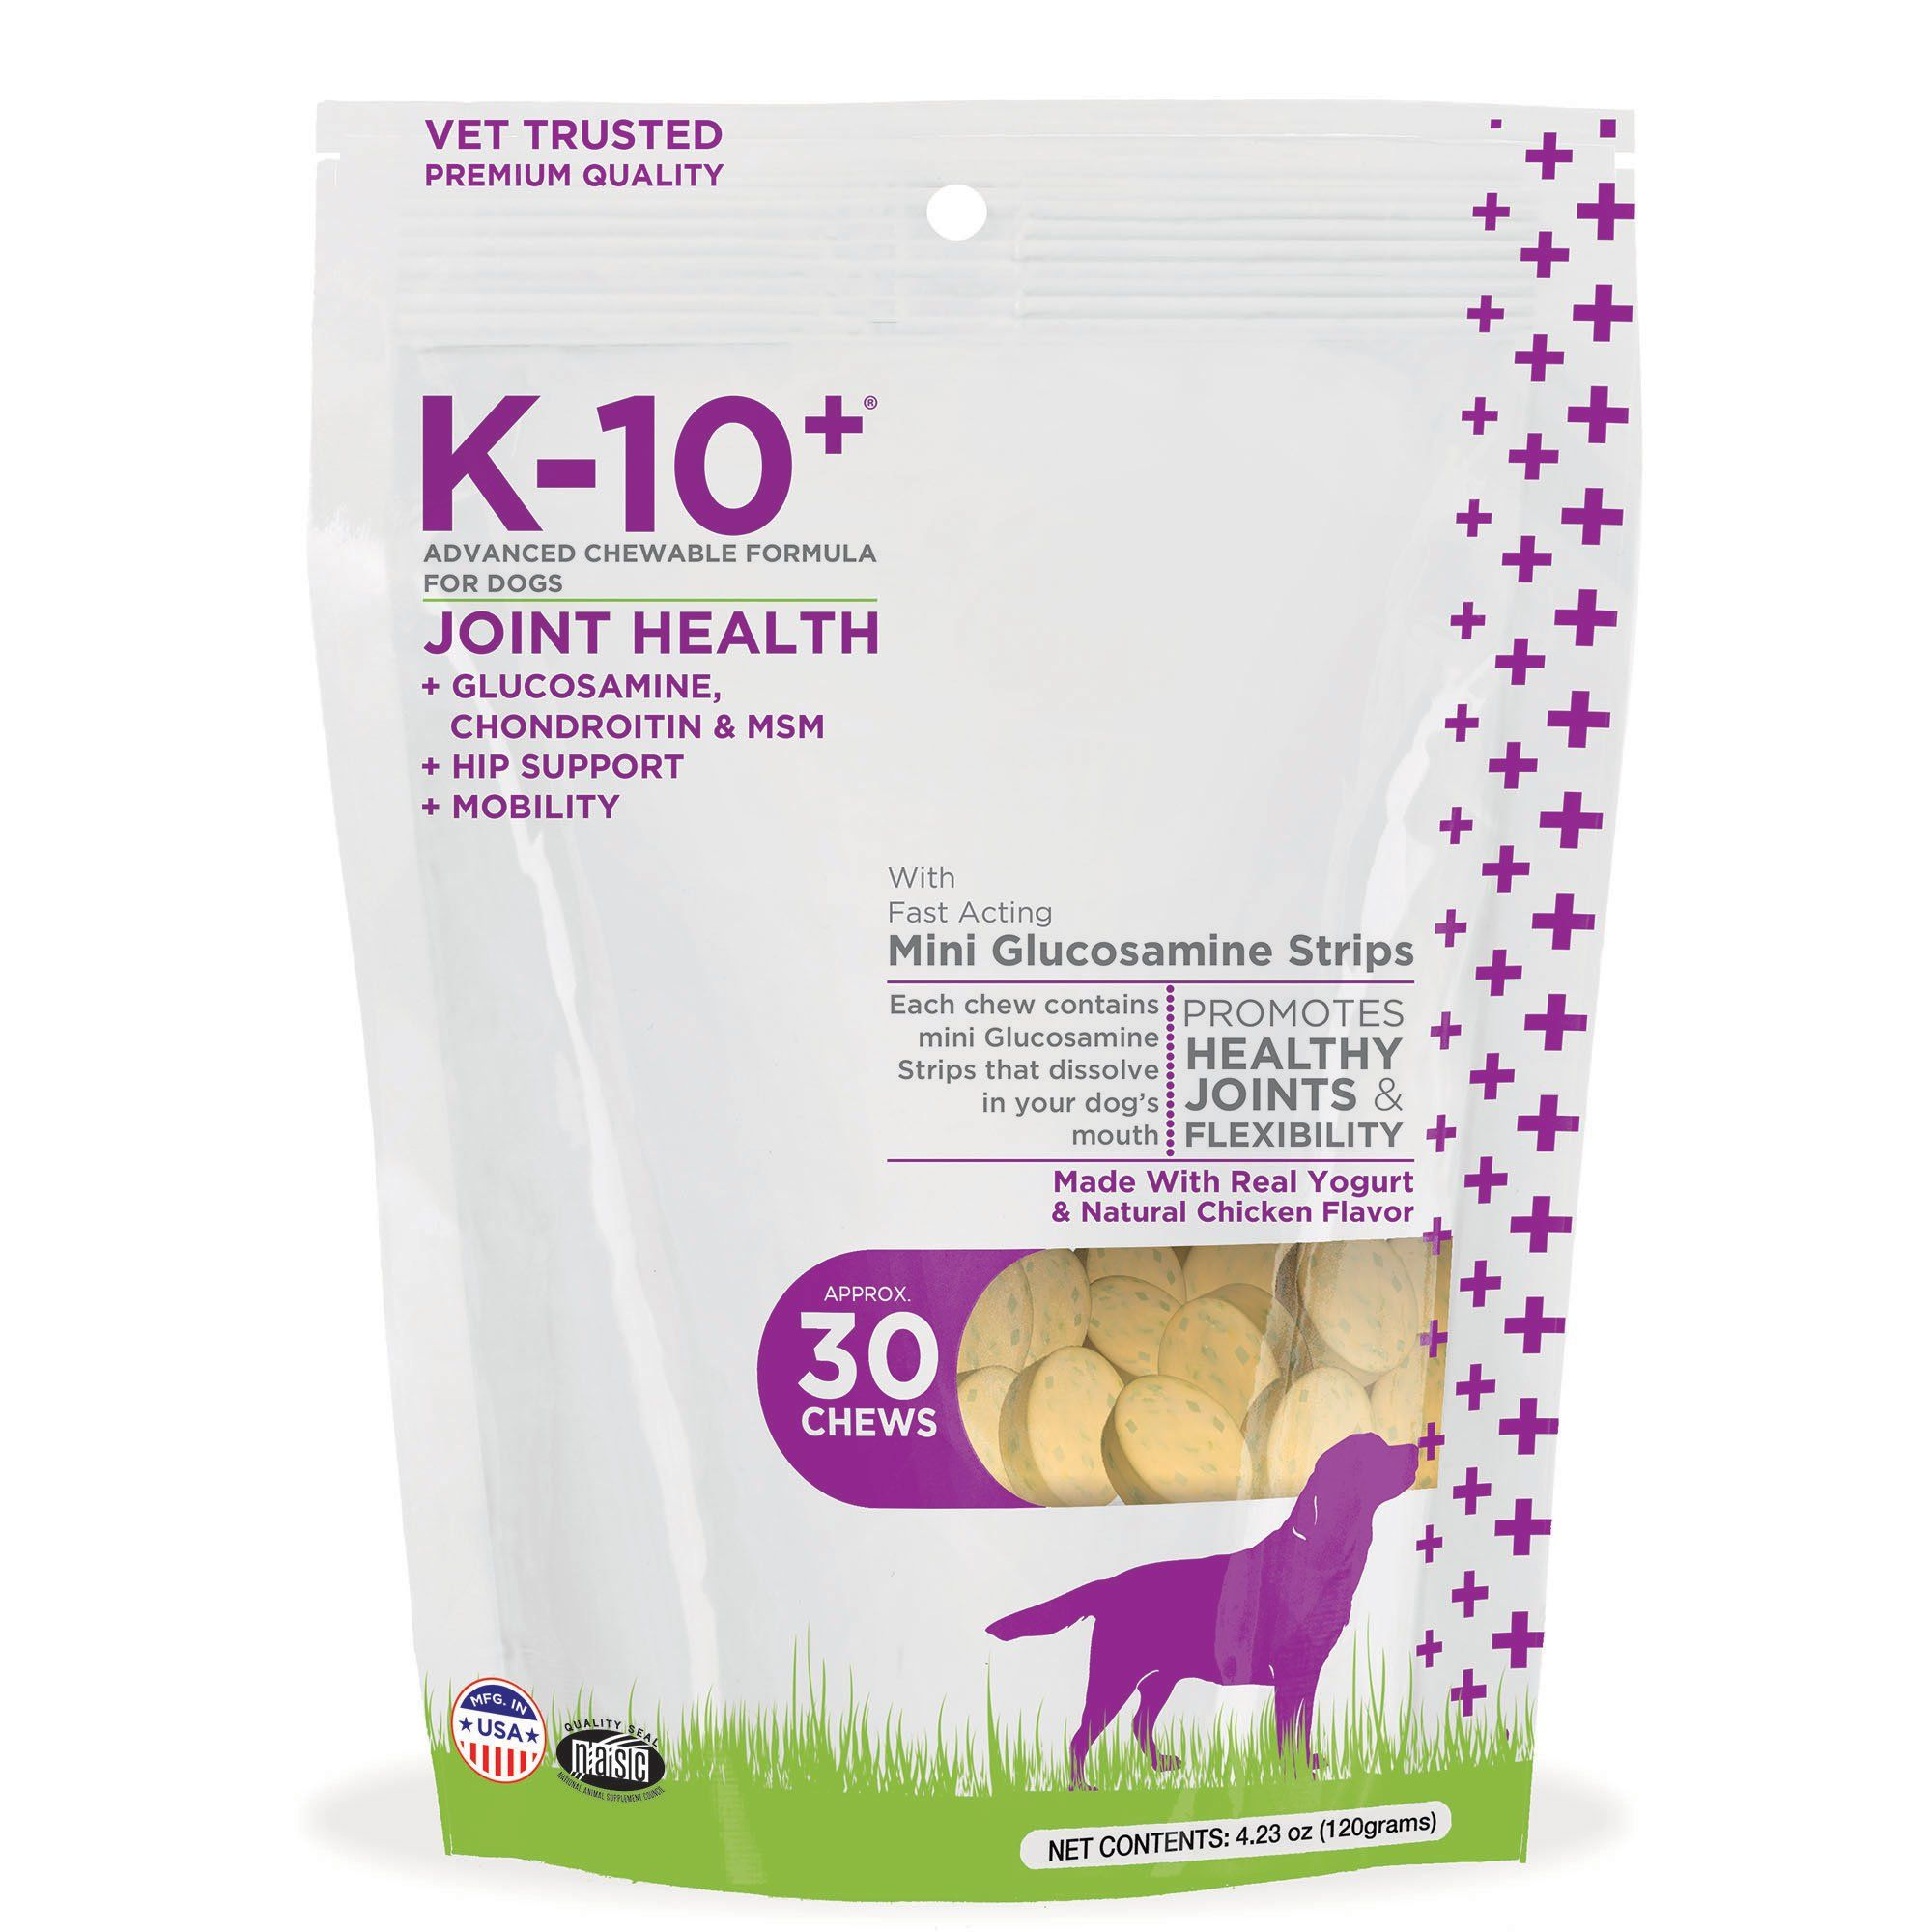 K10 Joint Health Advanced Chewable Formulas for Dogs Pack